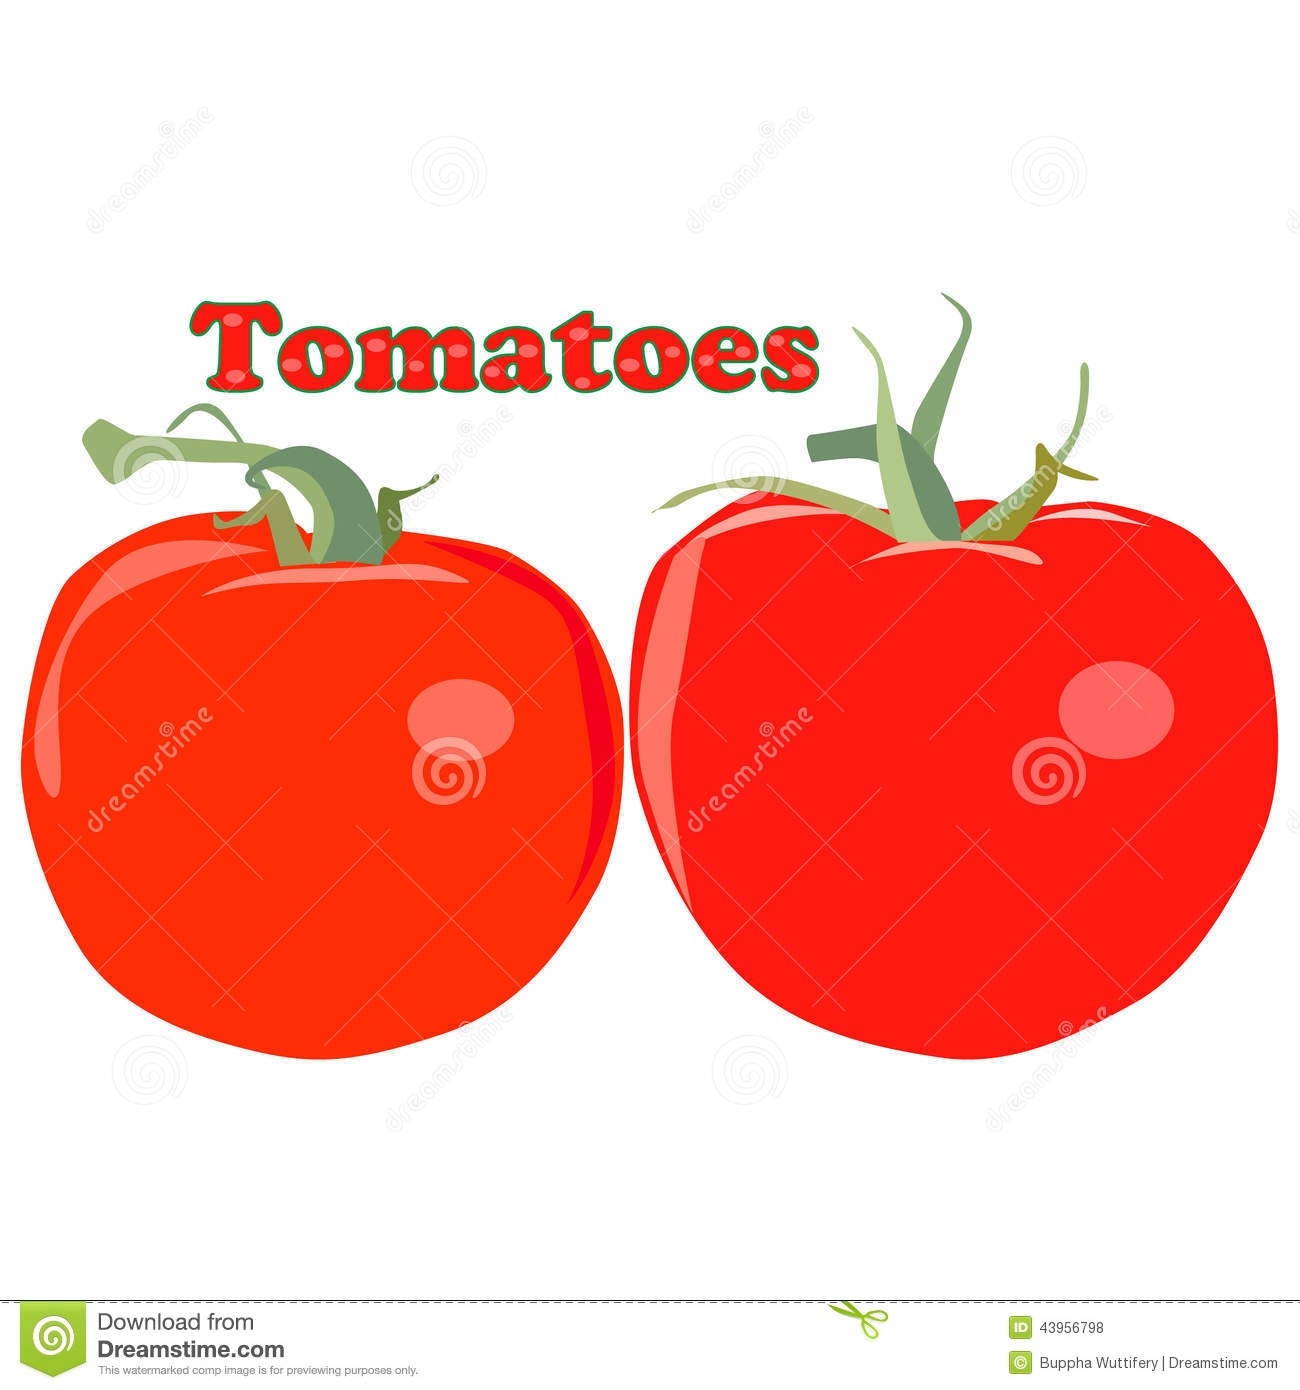 Tomatoes vector